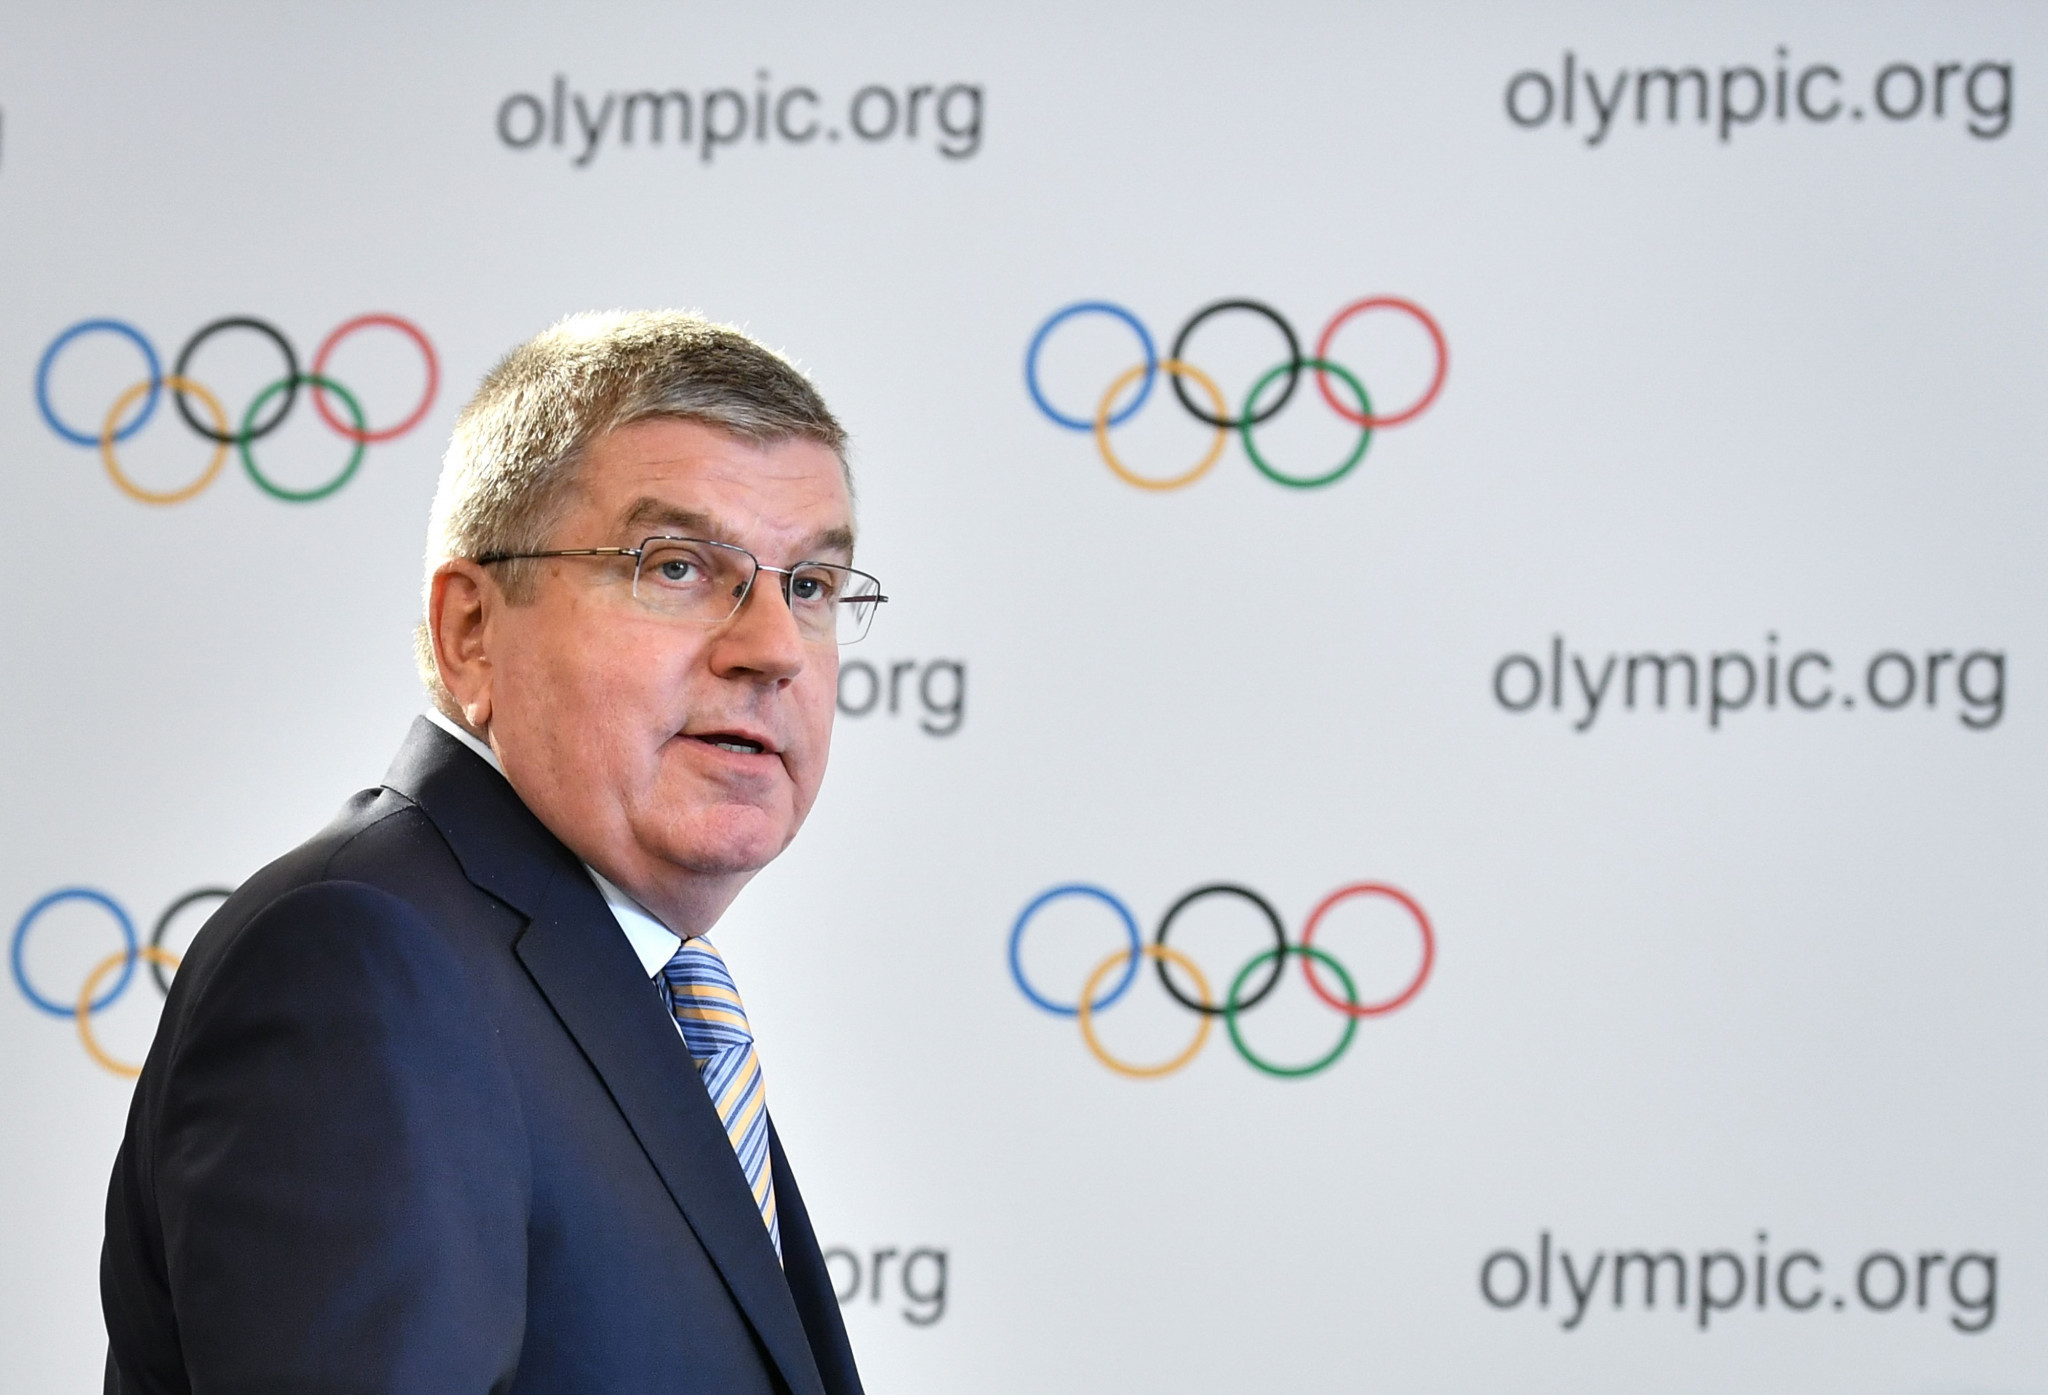 International Olympic Committee President Thomas Bach is in Indonesia to attend the Closing Ceremony of the 2018 Asian Games tomorrow ©Getty Images